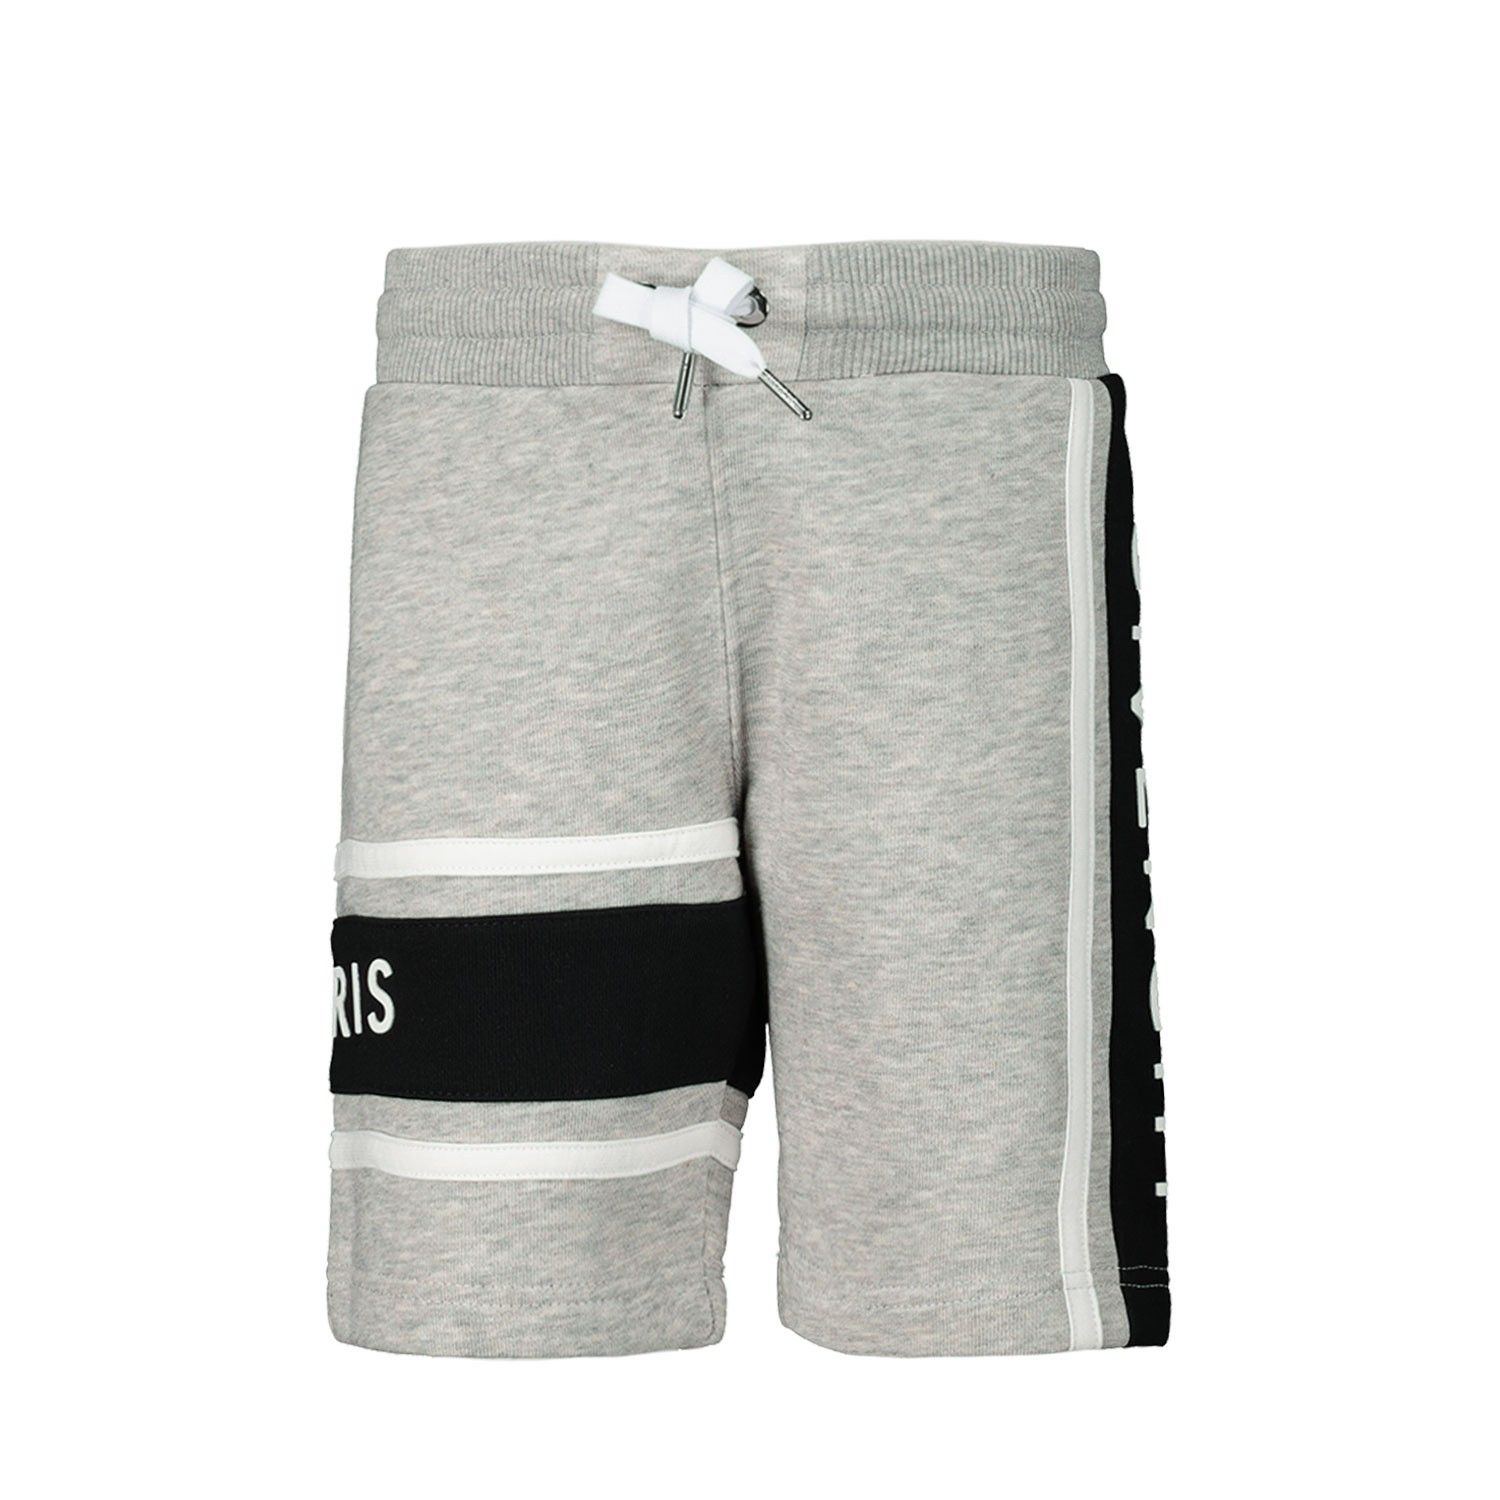 Picture of Givenchy H04069 baby shorts grey